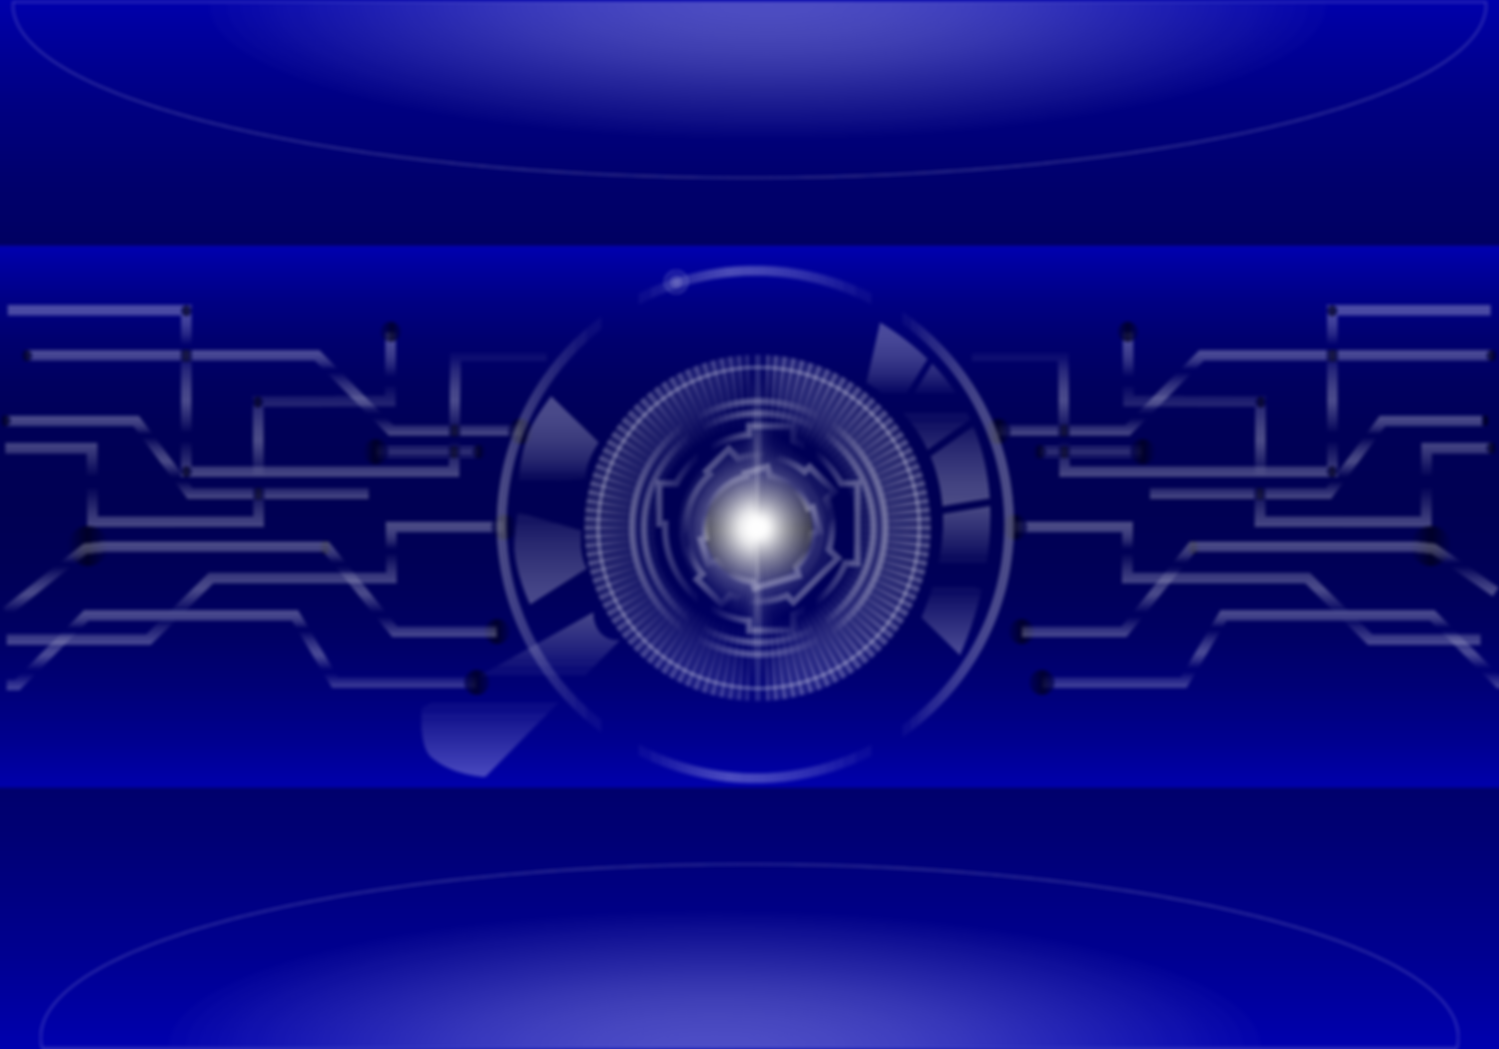 blue-2863557.png